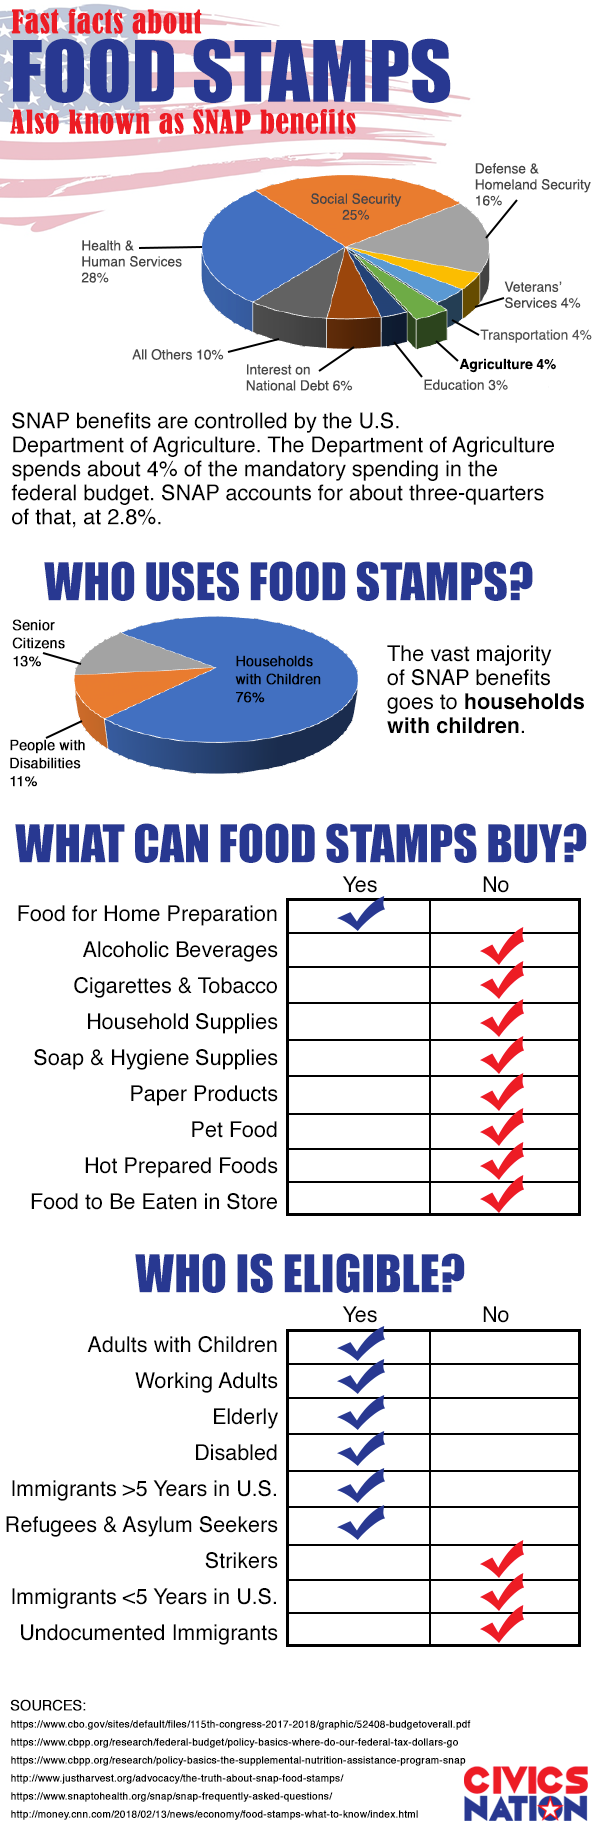 The vast majority of SNAP benefits goes to households with children.